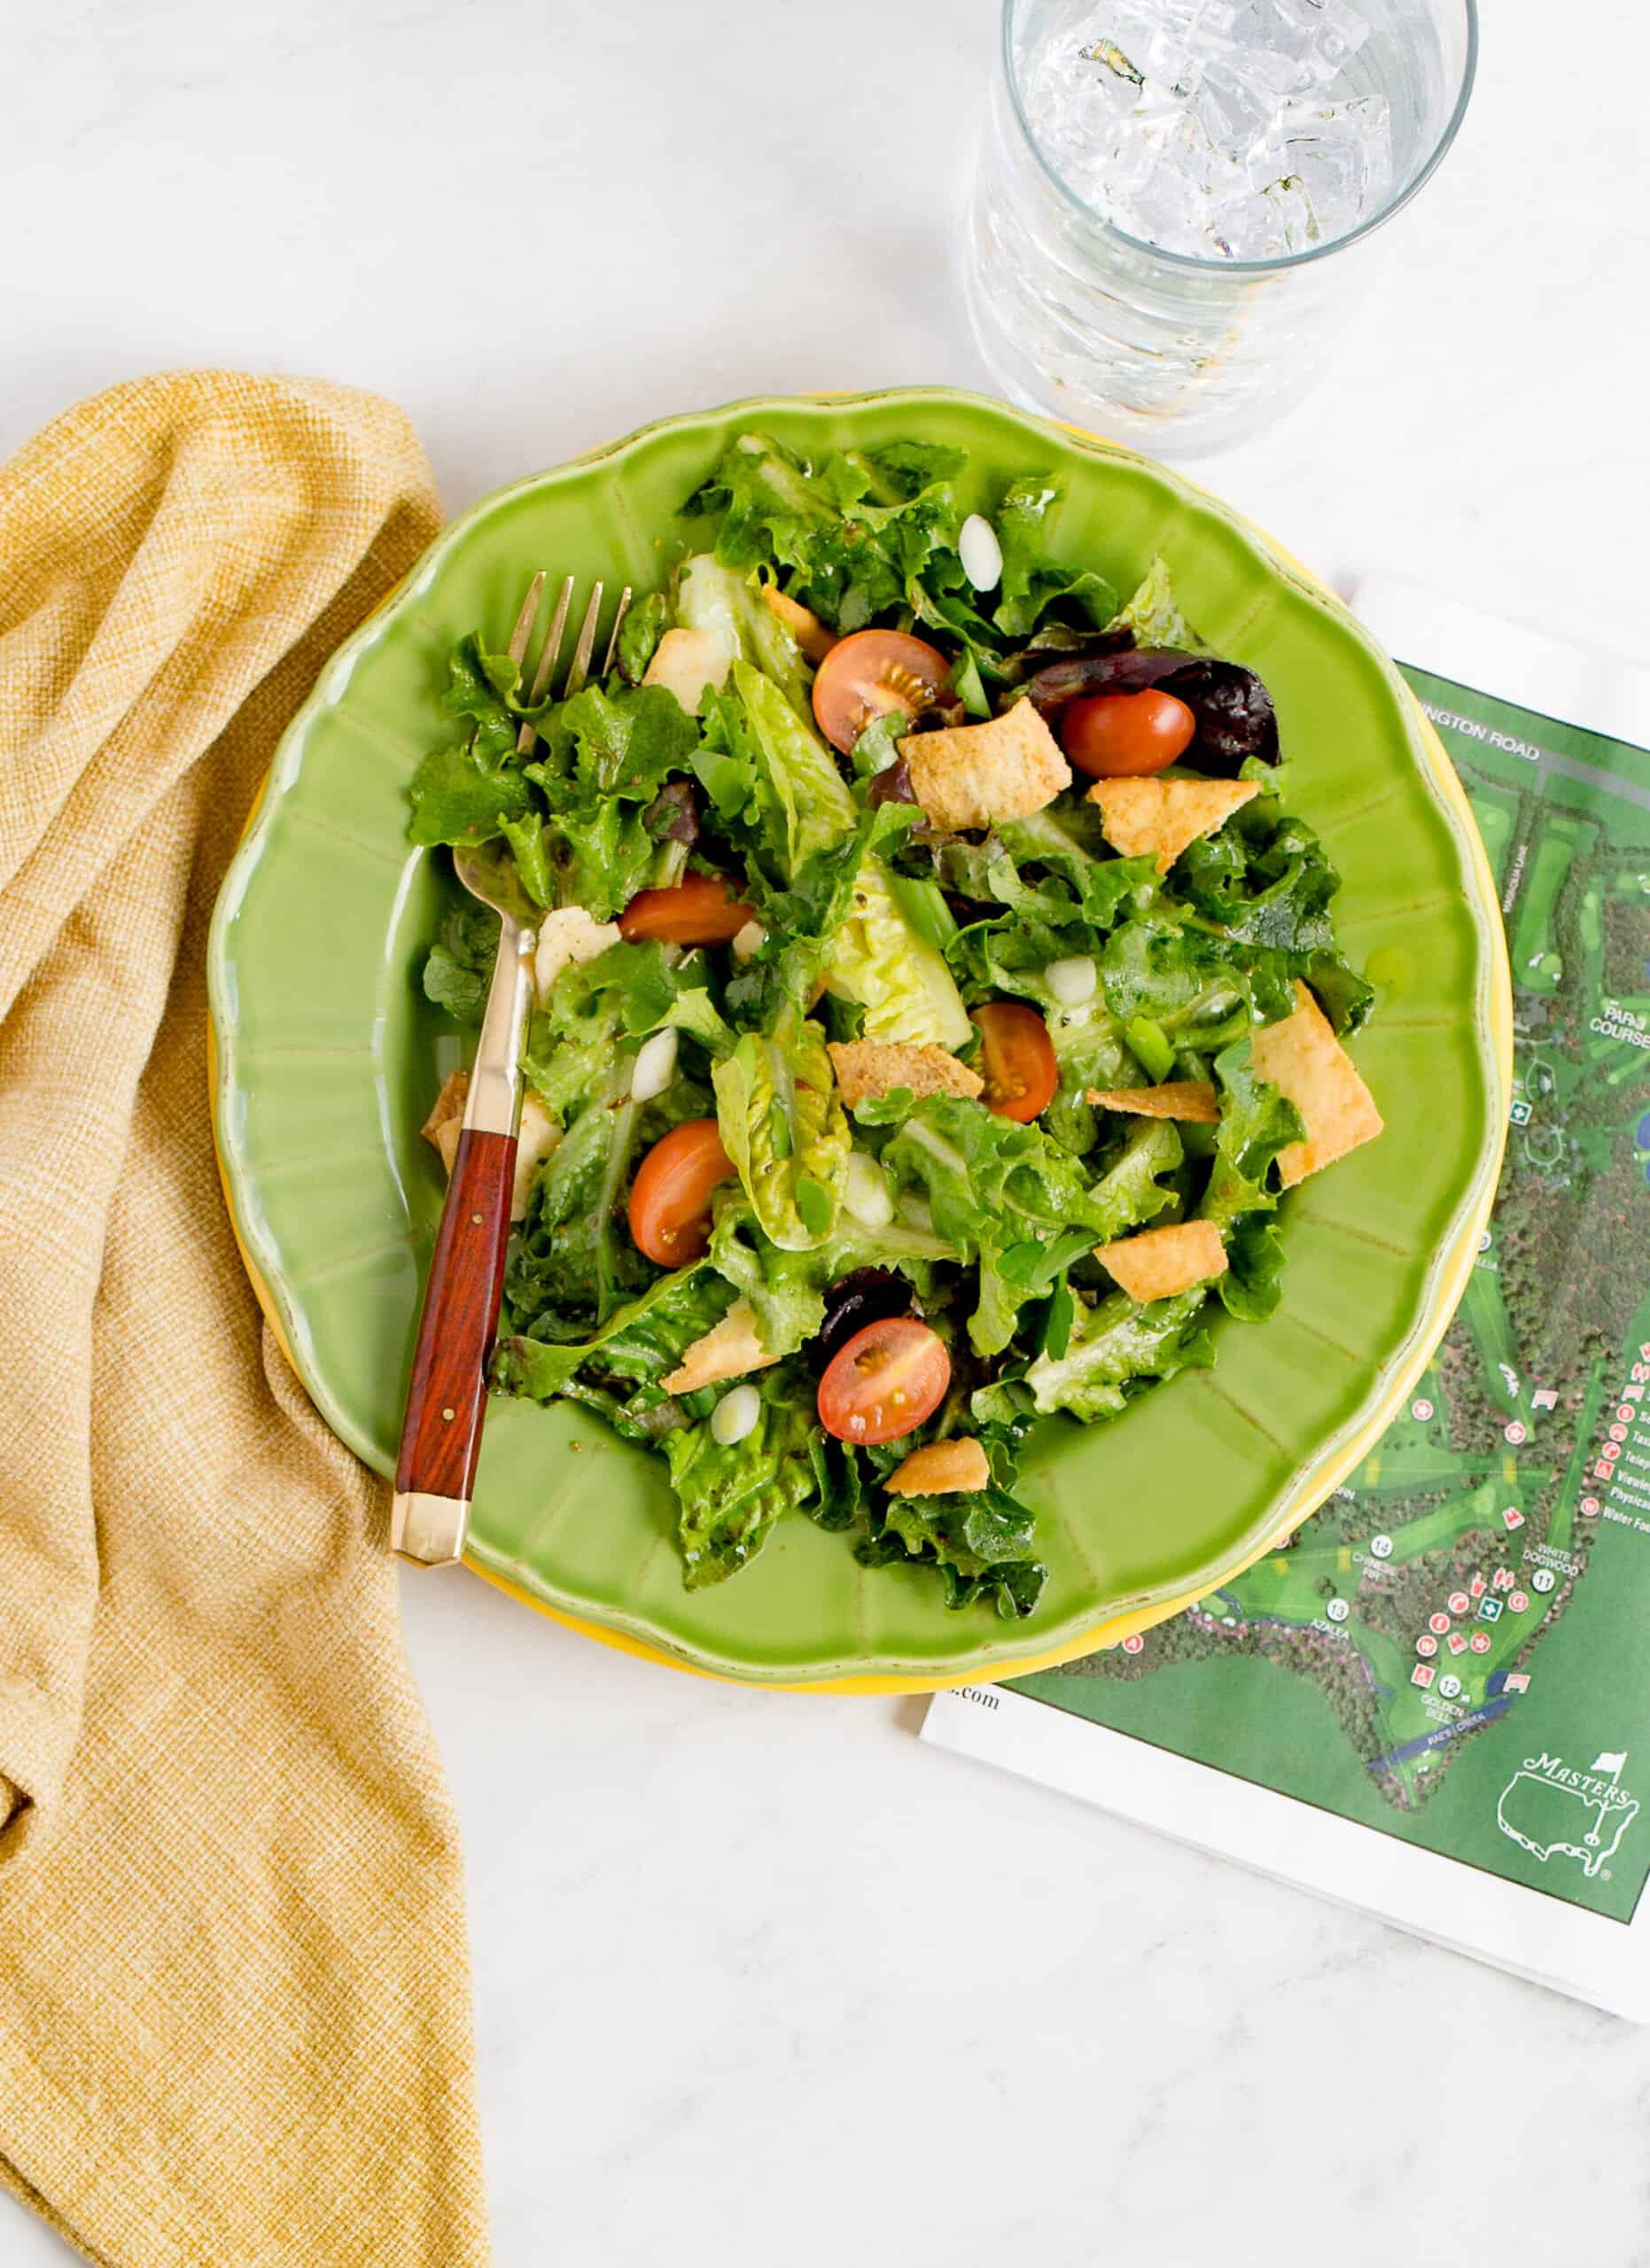 Famous green jacket salad on a plate with map of maters near